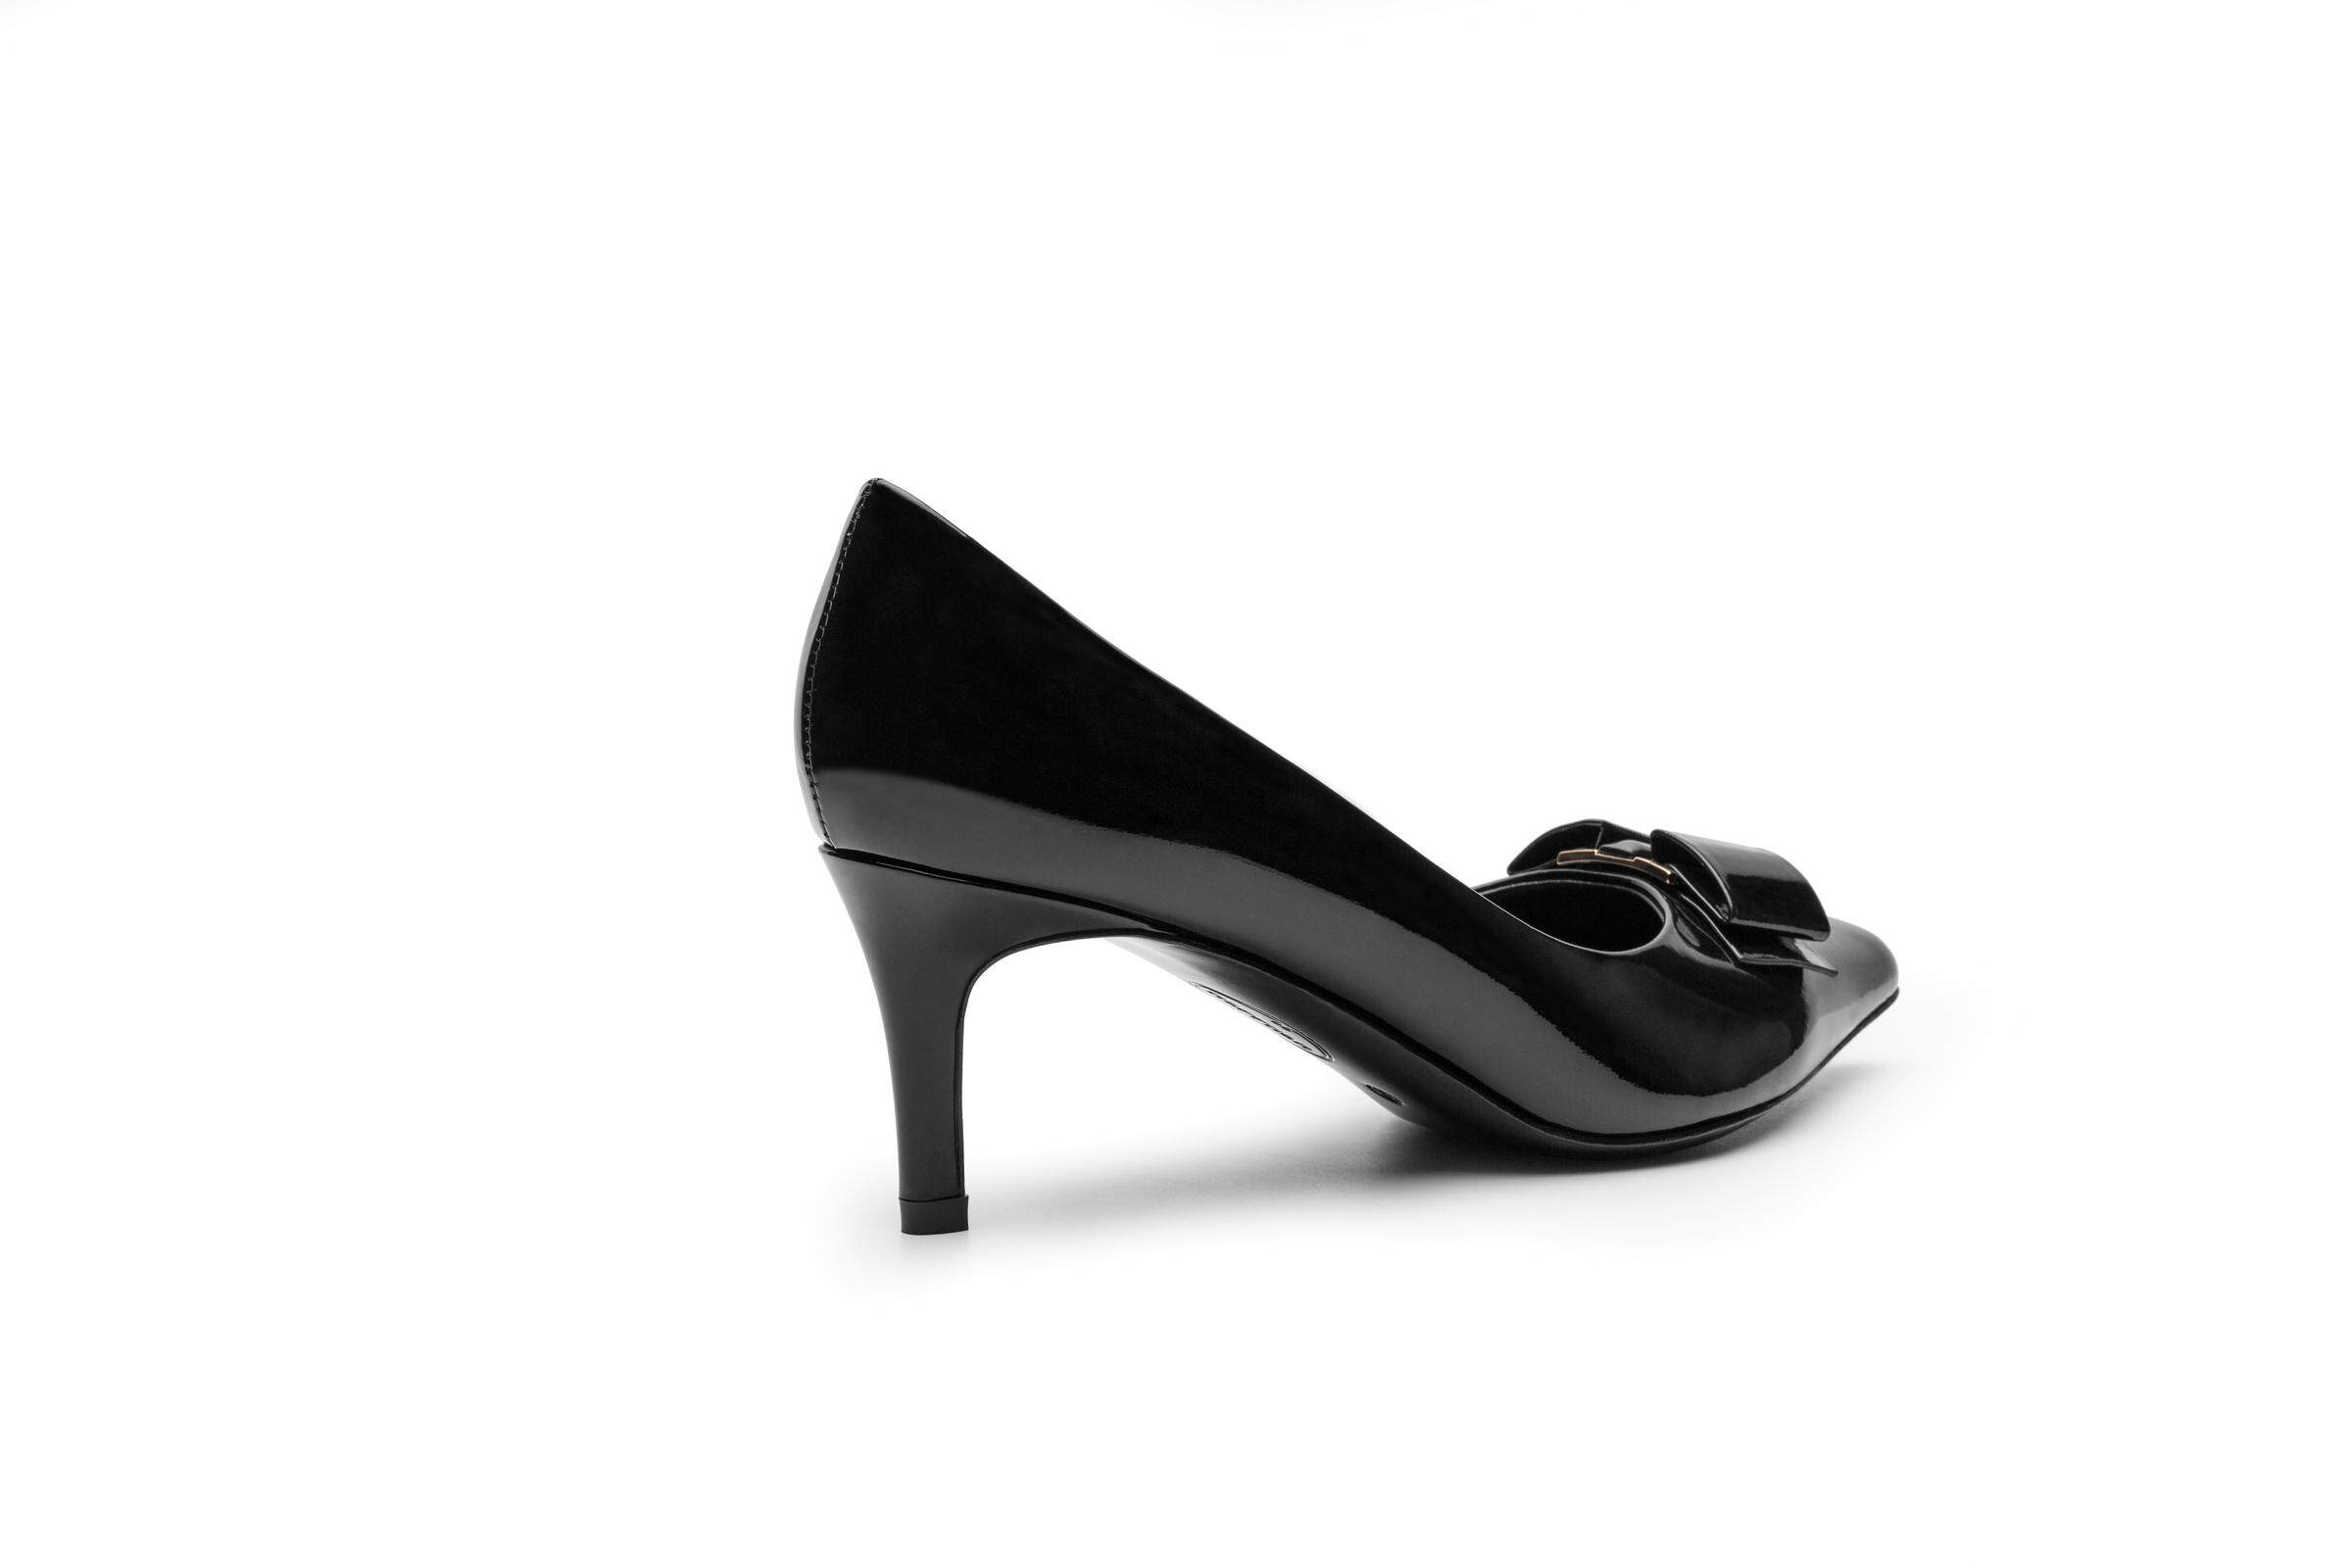 Butterfly Buckle Black Patent Leather High Heel